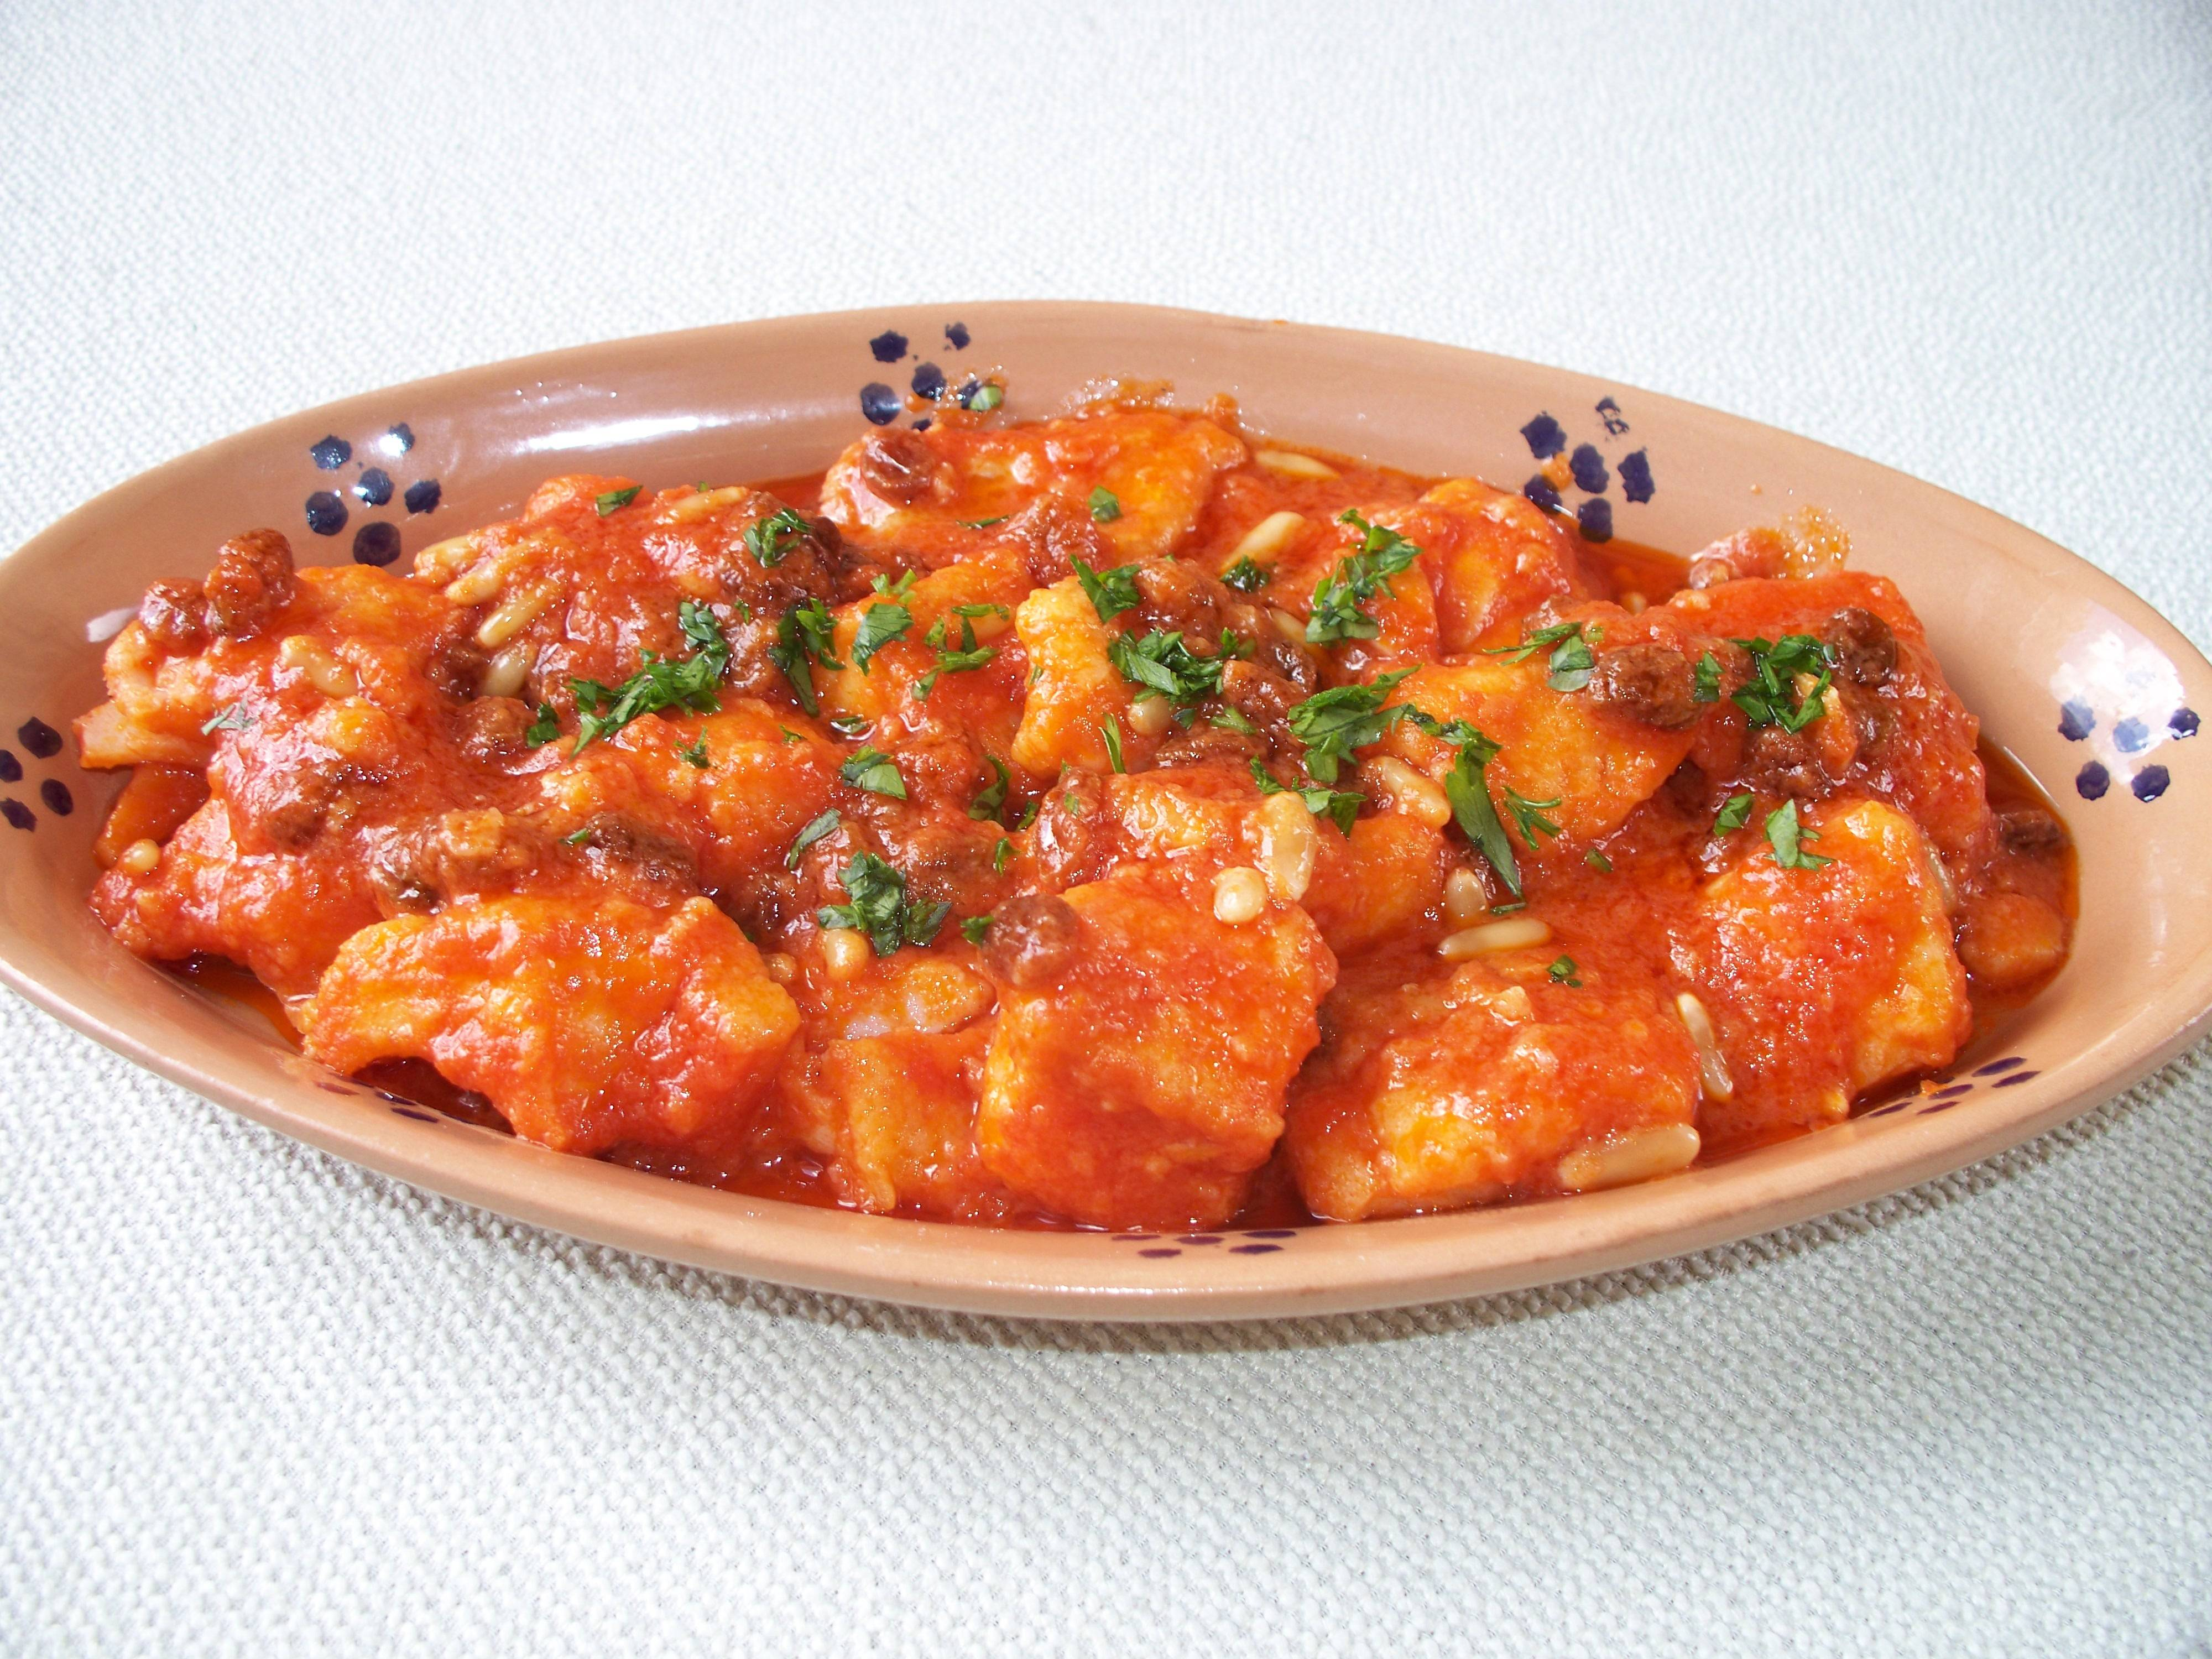 Baccalà agrodolce